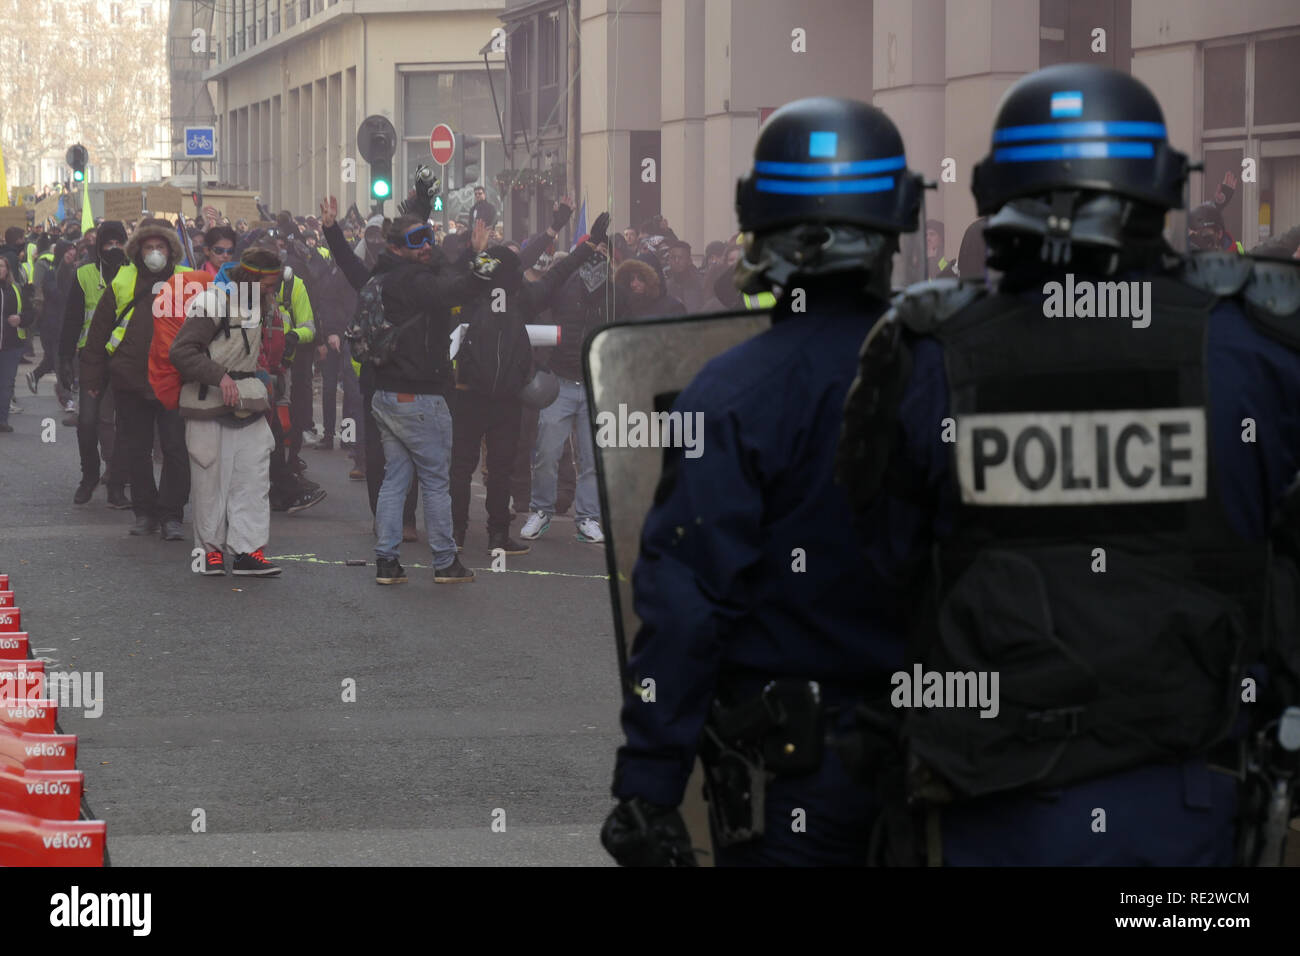 Lyon, France, January 19th 2019: Riot police officers use tear gas cannisters to push back Yellow jackets as they take part to the 10th day of protest against french goverment reform projetct. in Lyon (Central-Eastern France) on january 19, 2019  Credit Photo: Serge Mouraret/Alamy Live News - Stock Image